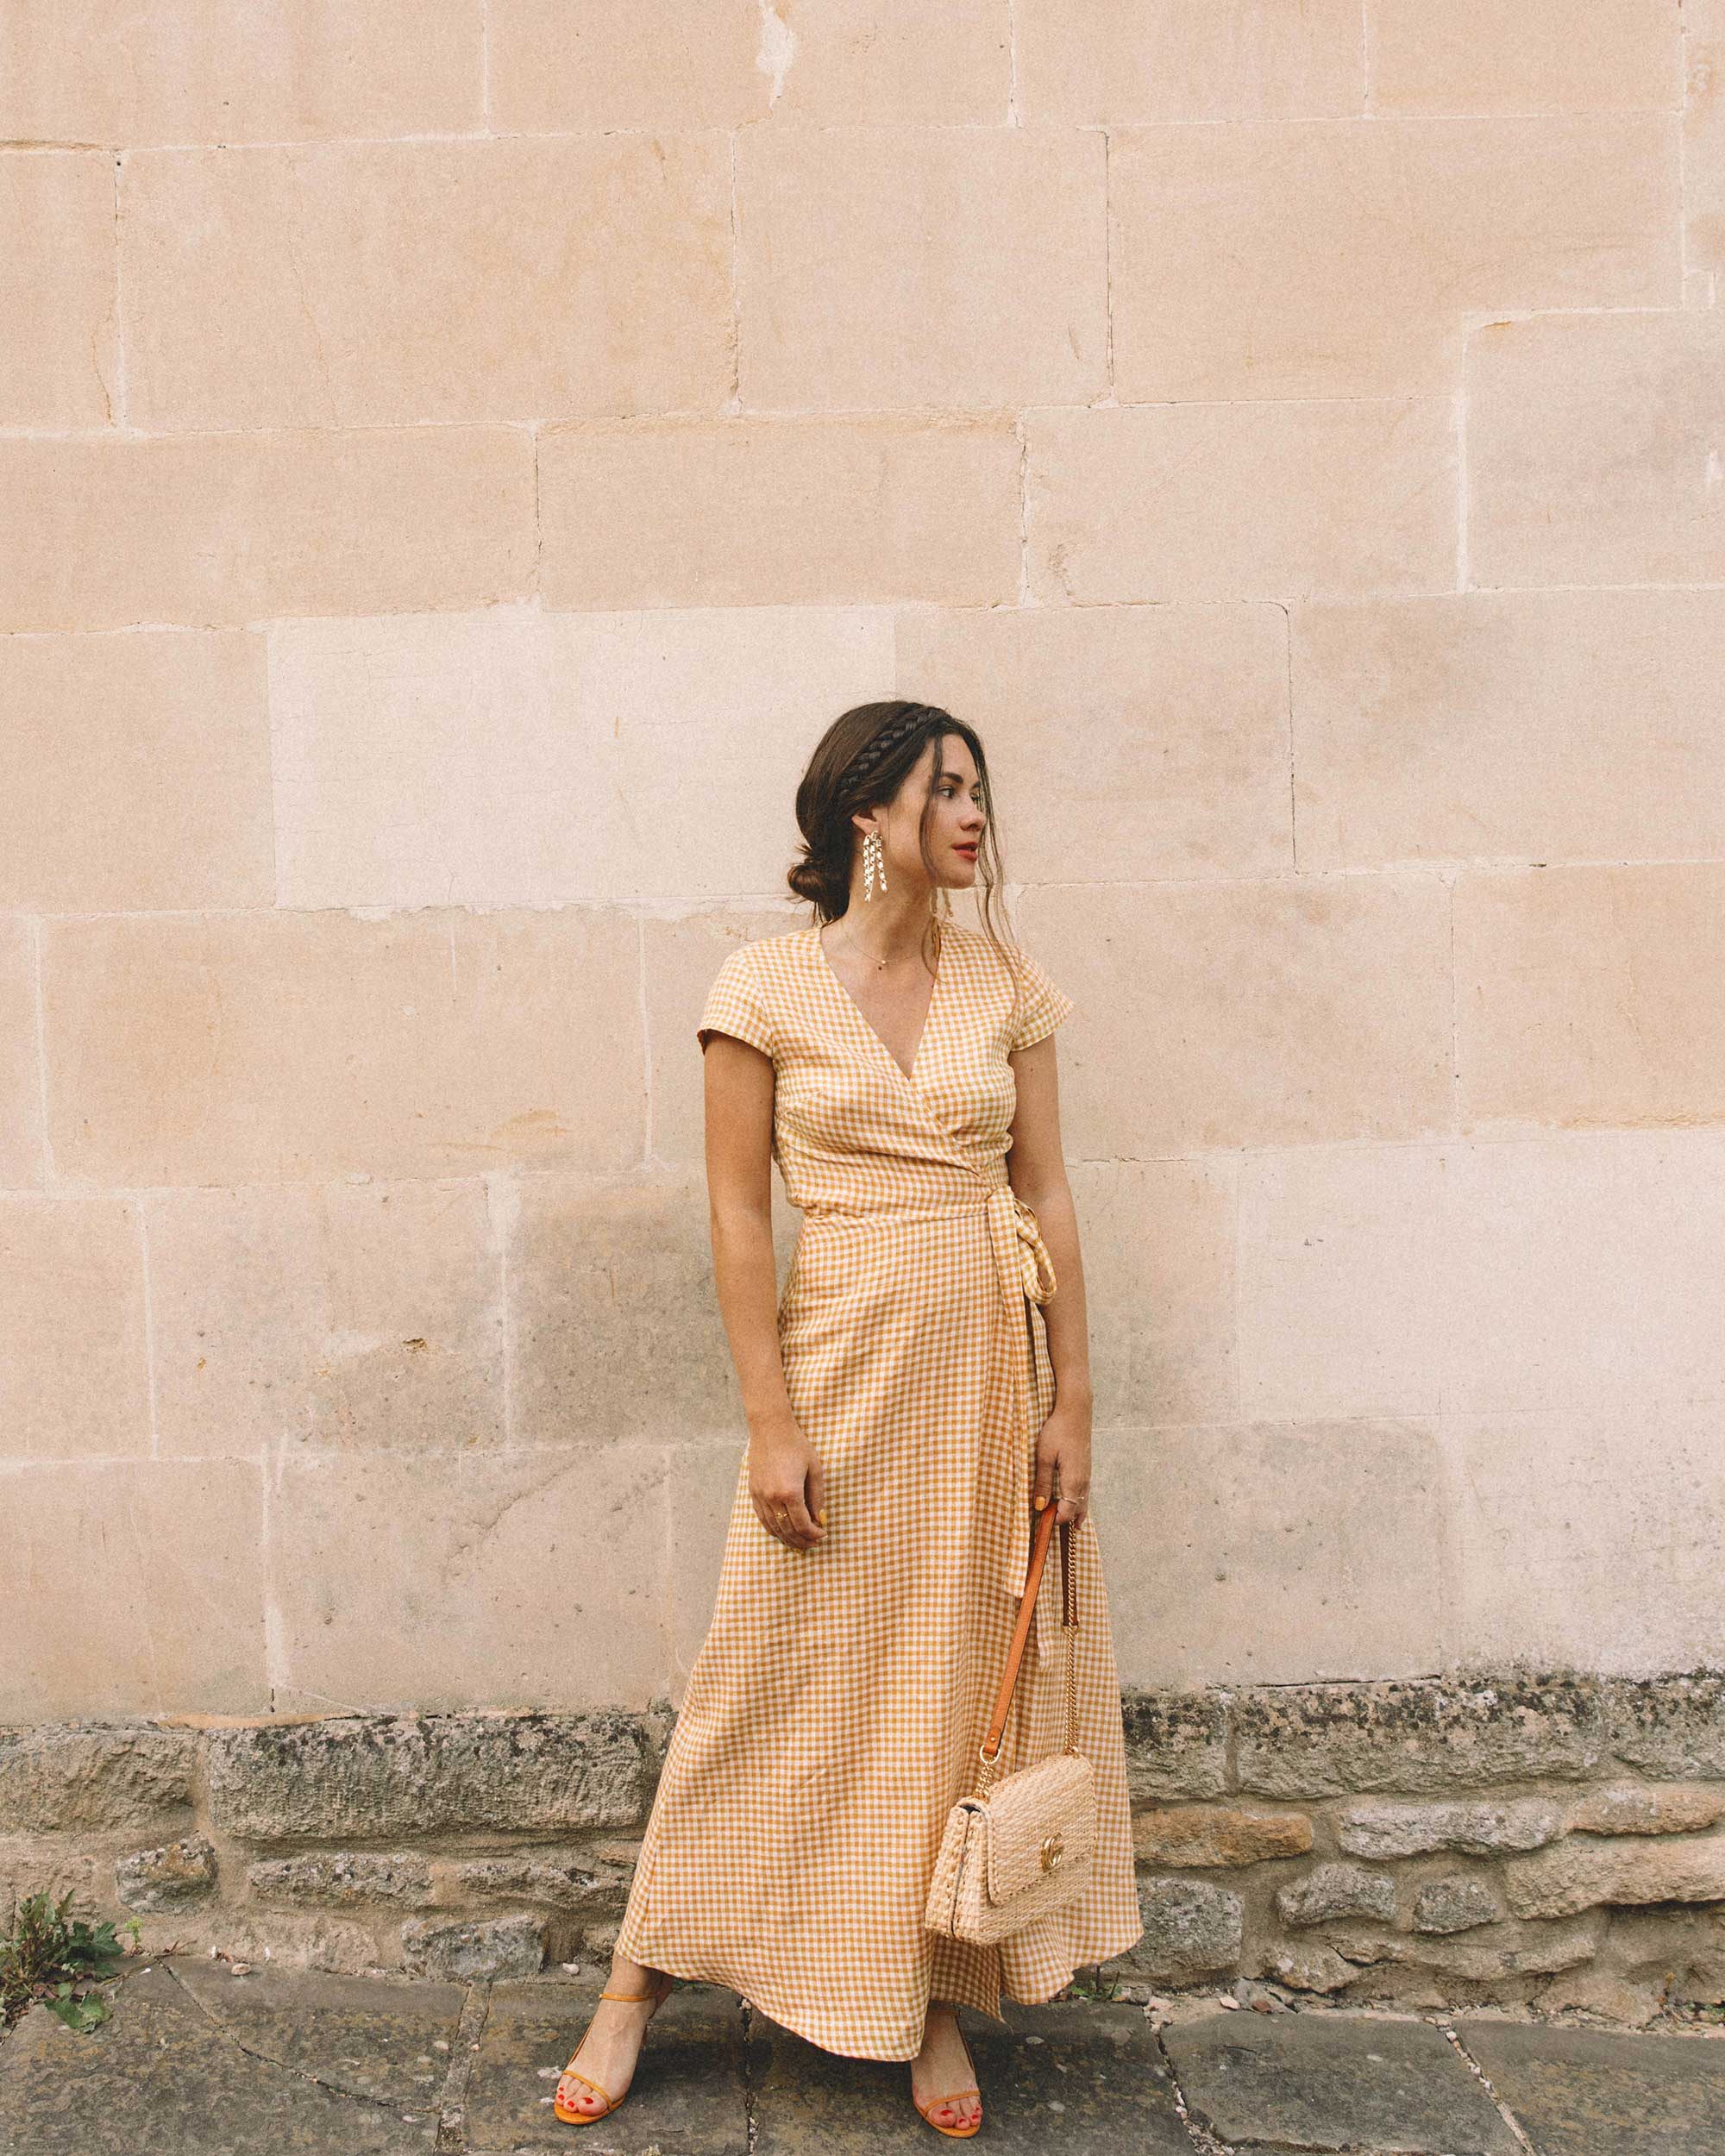 Sarah Butler of Sarah Styles Seattle explores the English Countryside Cotswolds wearing Gingham Linen Midi Wrap Dress | @sarahchristine -7.jpg